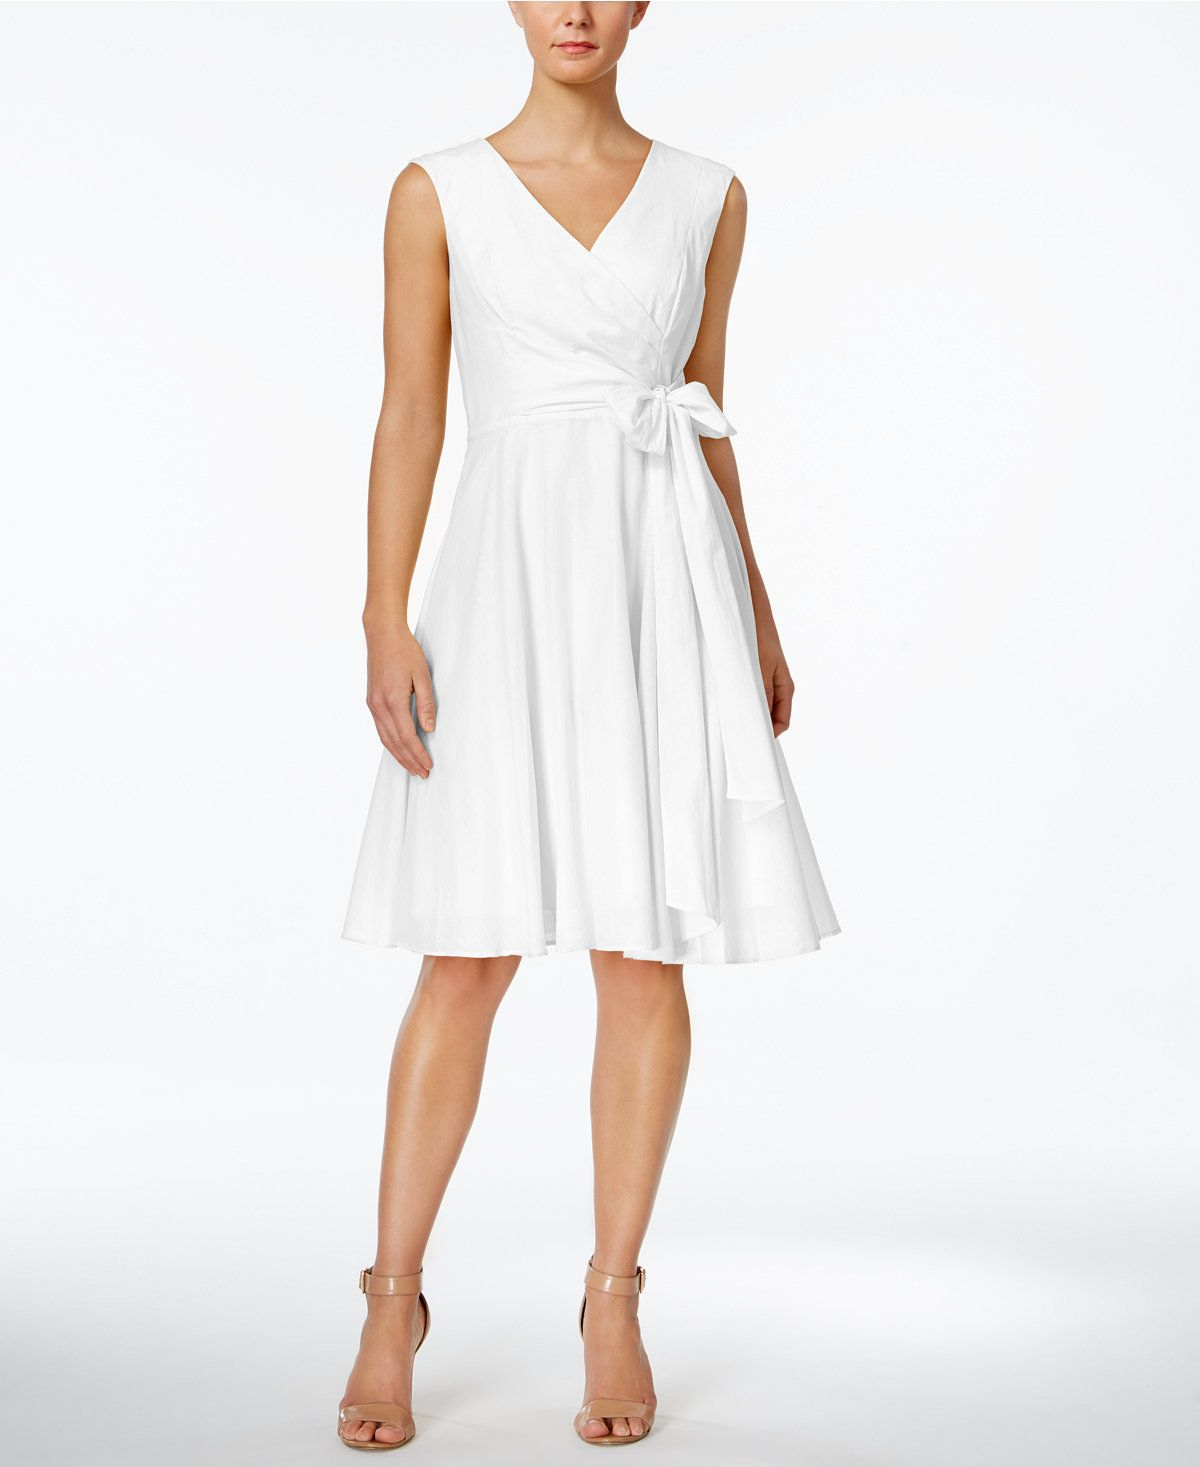 16+ White fit and flare dress information